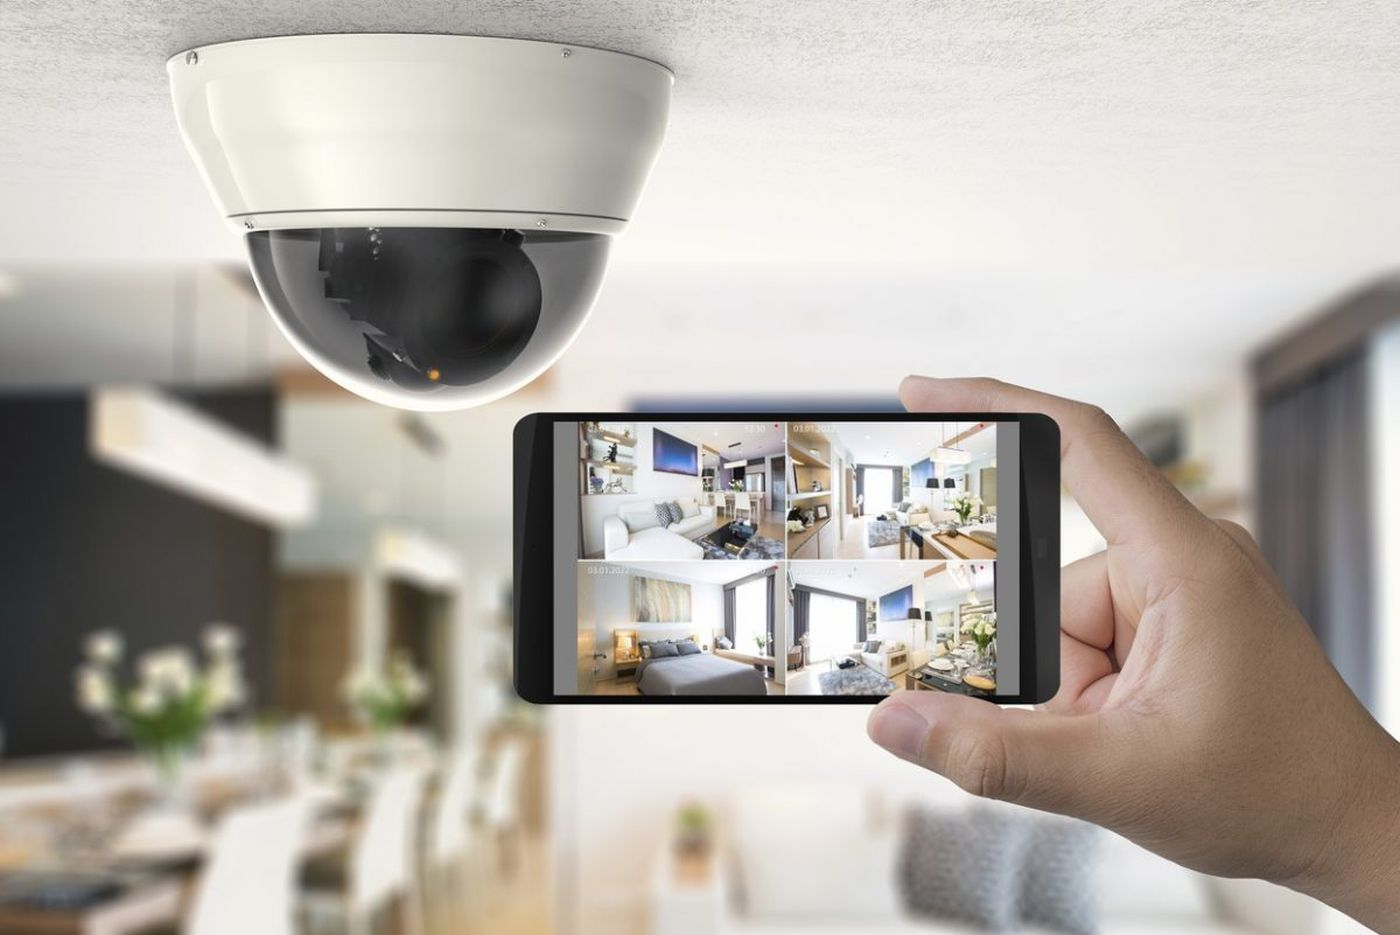 Shopping for a home? Seller might use a smart video camera to spy on you